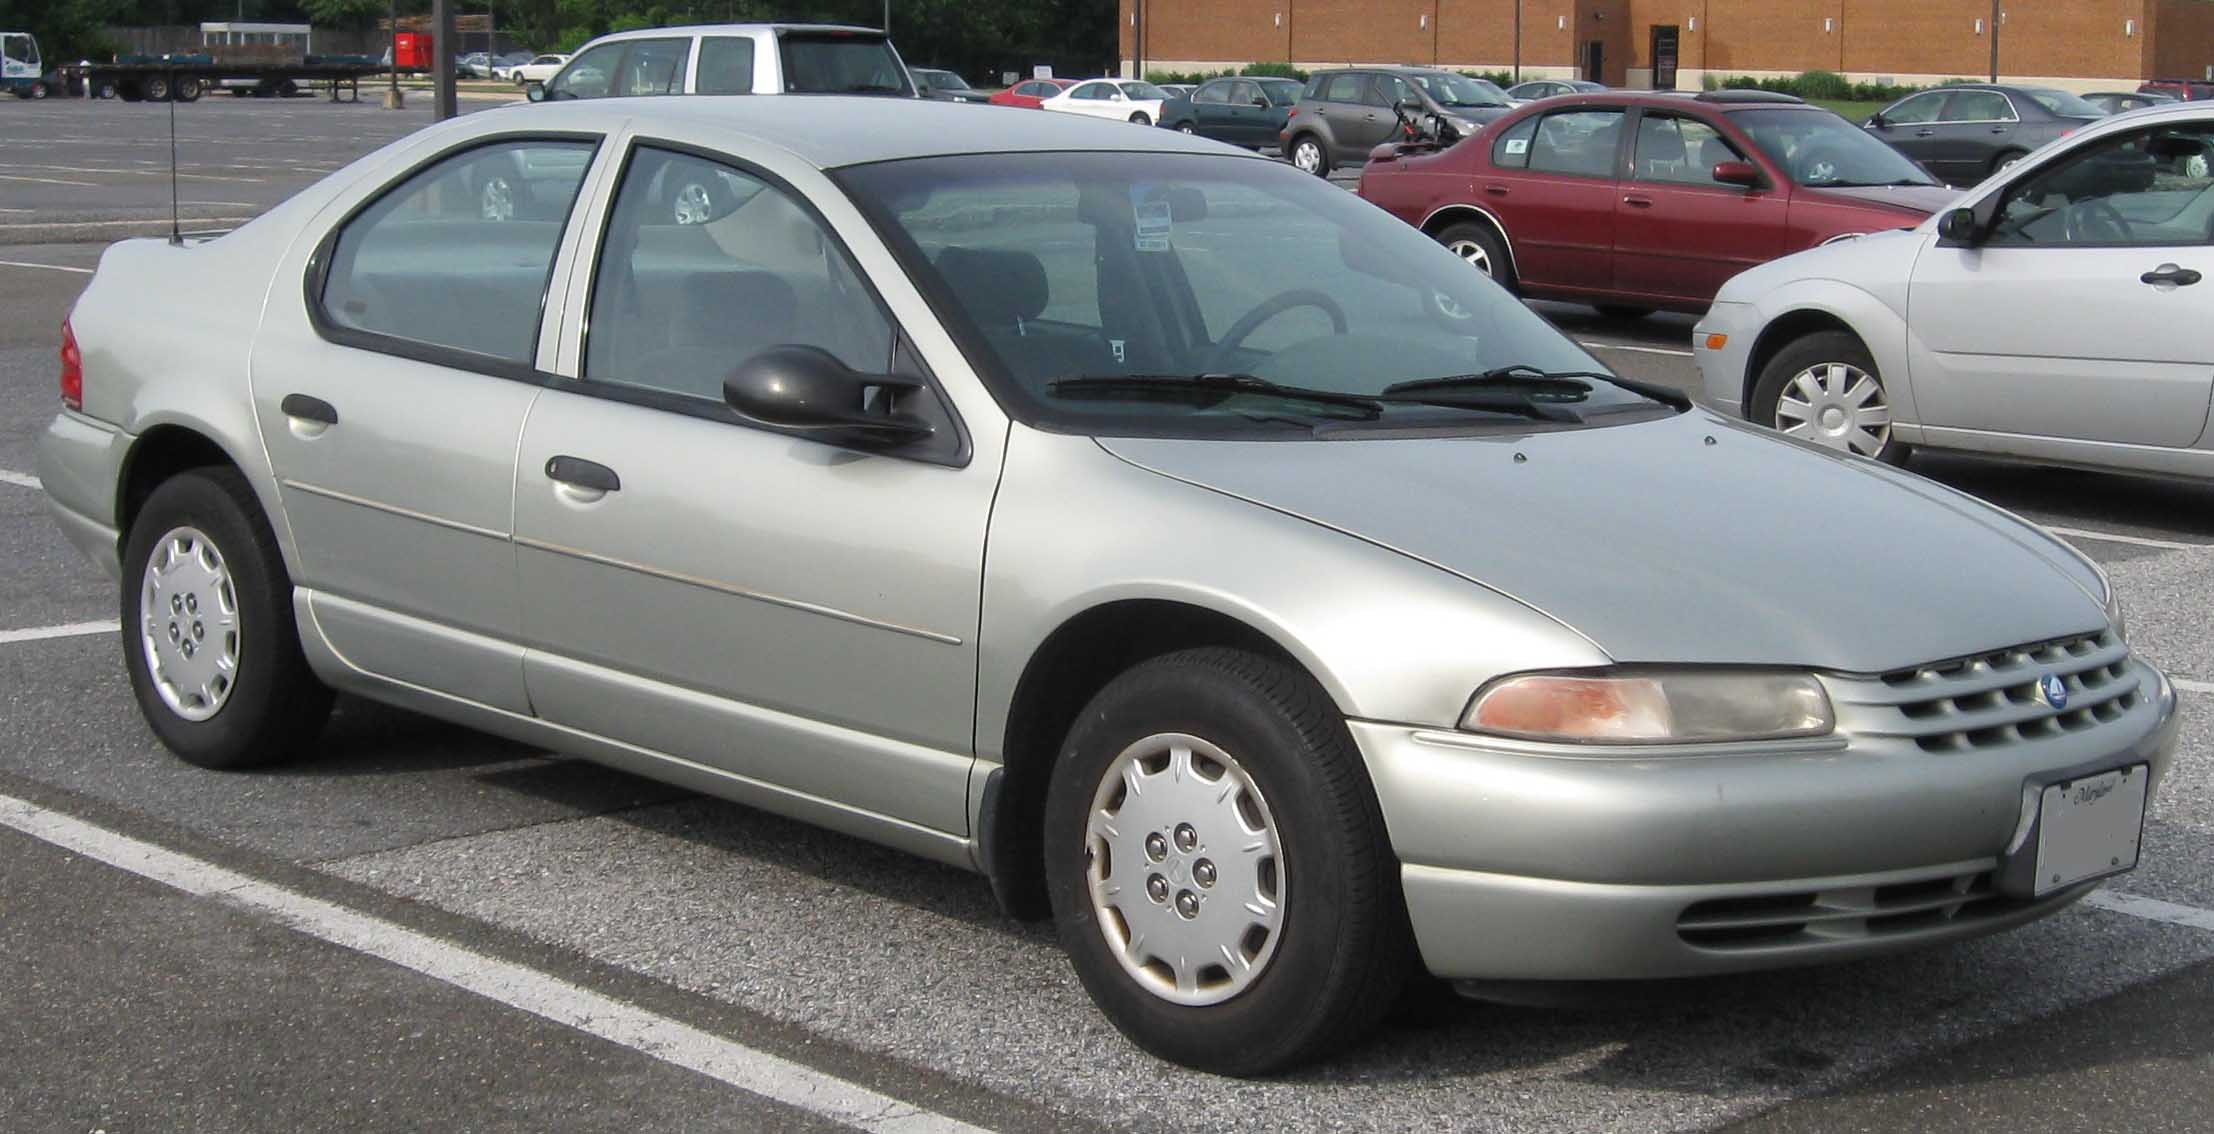 1998 Plymouth Breeze #1